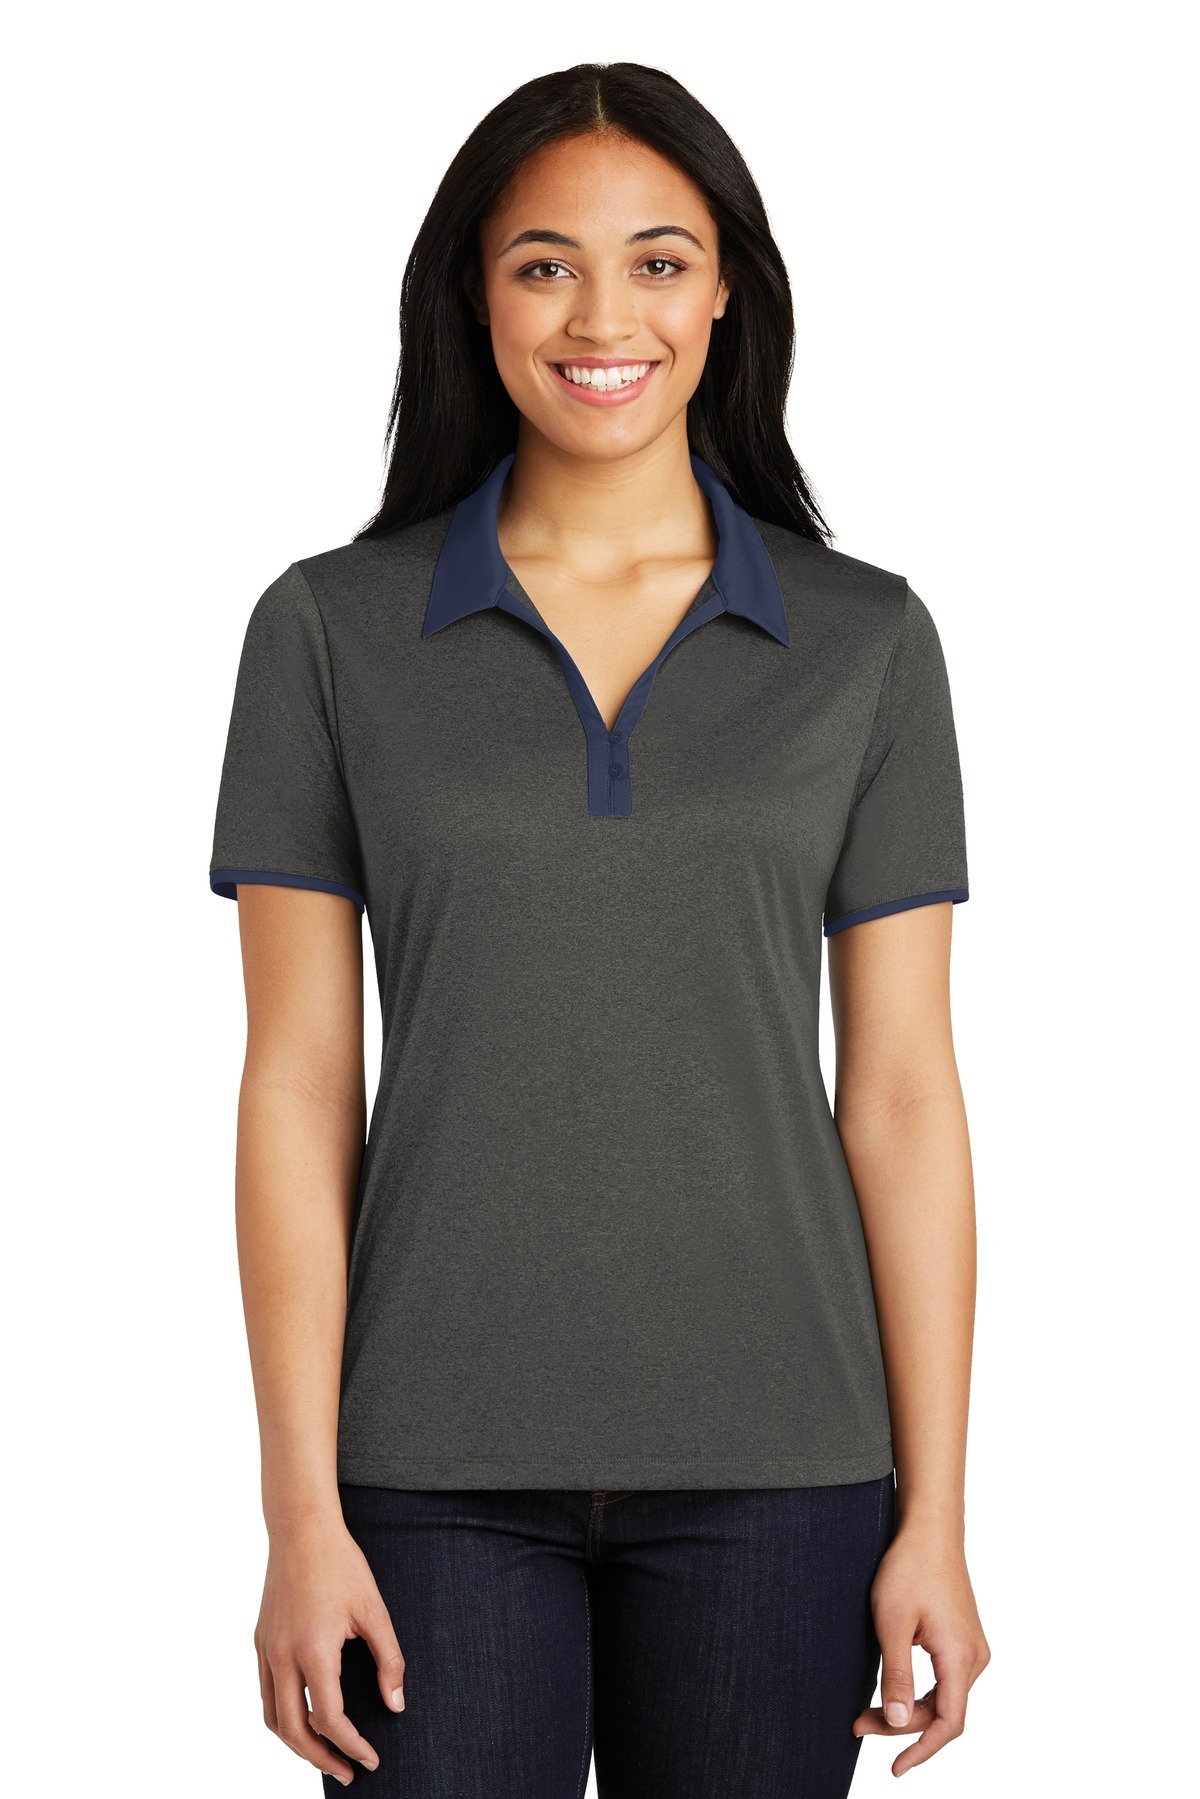 Sport-Tek ®  Ladies Heather Contender ™  Contrast Polo. LST667 - Graphite Heather/ True Navy